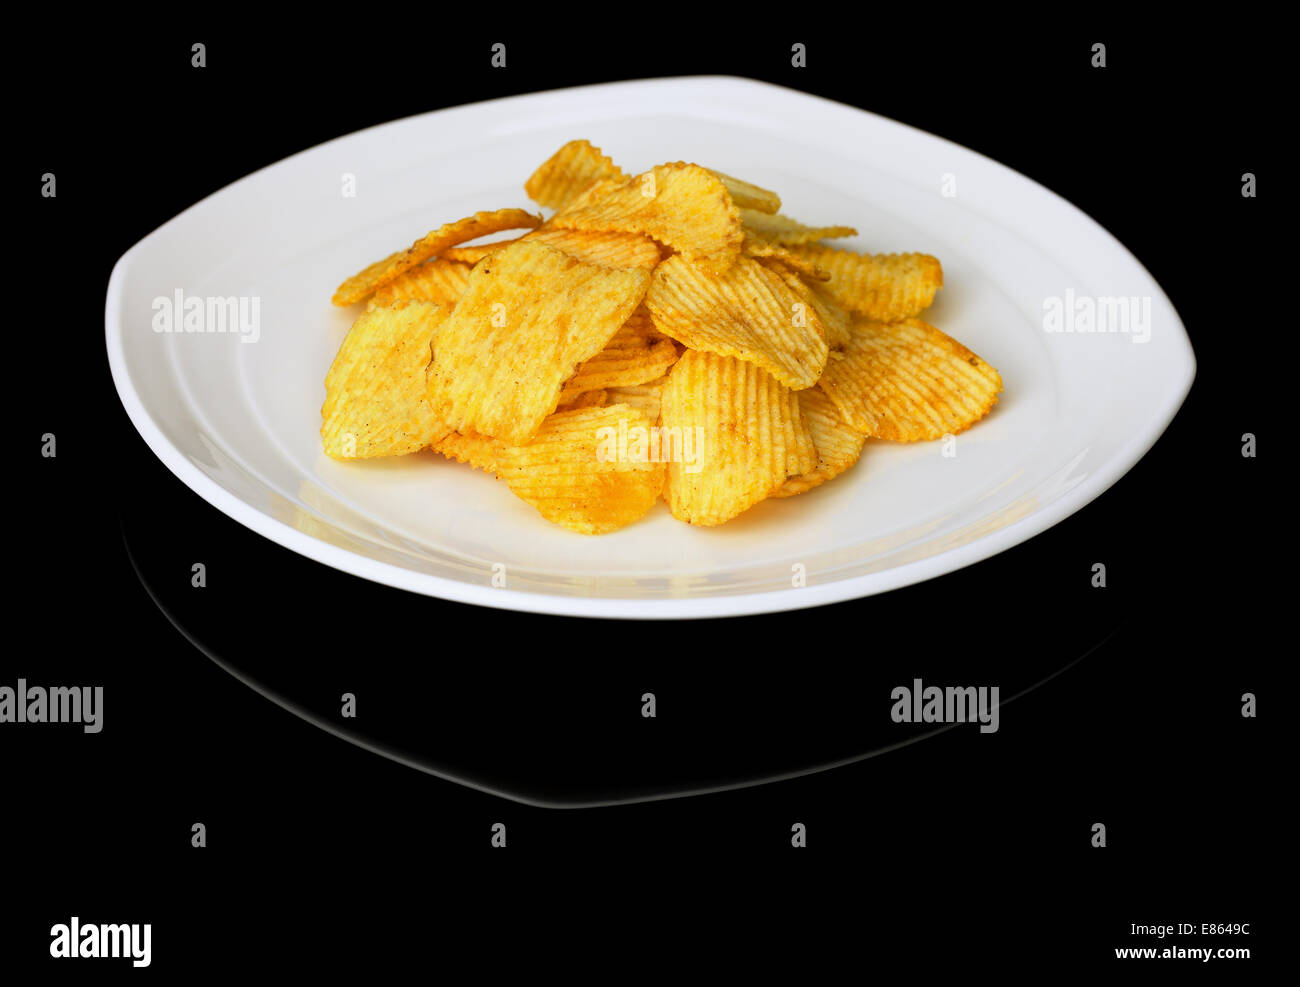 Potato chips on a plate on a deep black background - Stock Image